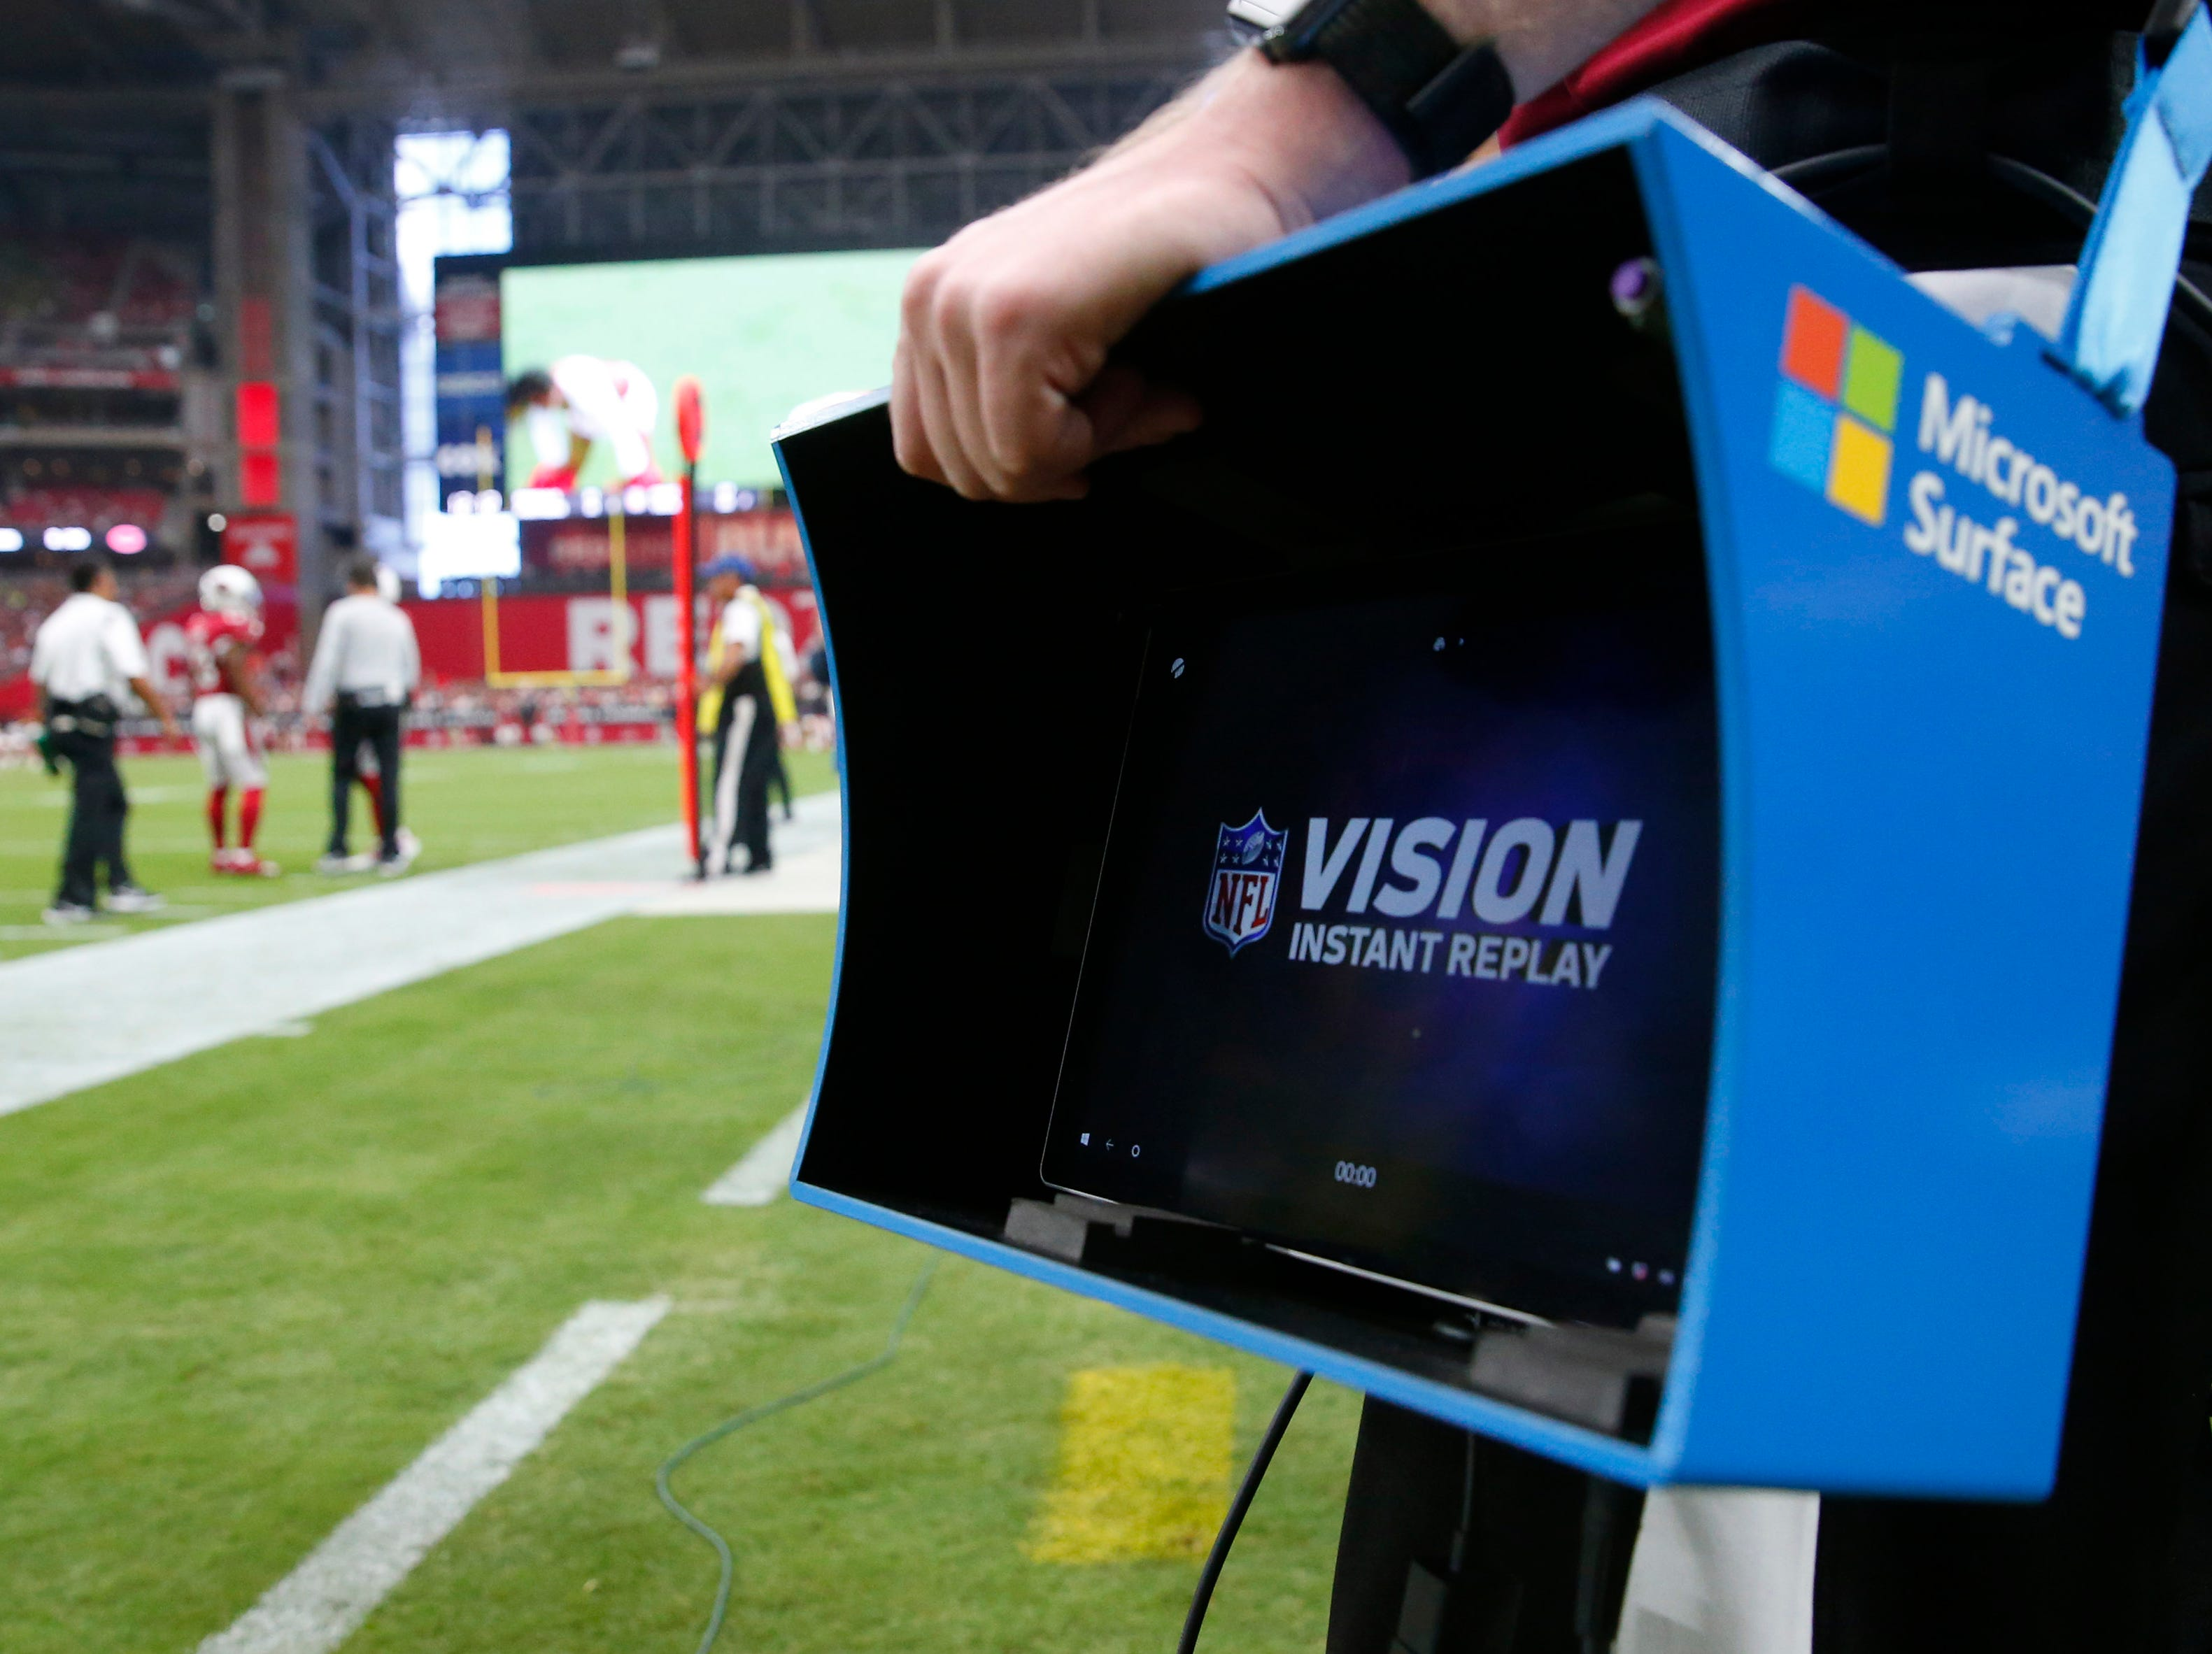 An official holds an instant replay monitor on the sidelines during the third quarter between the Arizona Cardinals and the Chicago Bears at State Farm Stadium in Glendale, Ariz. September 23, 2018.